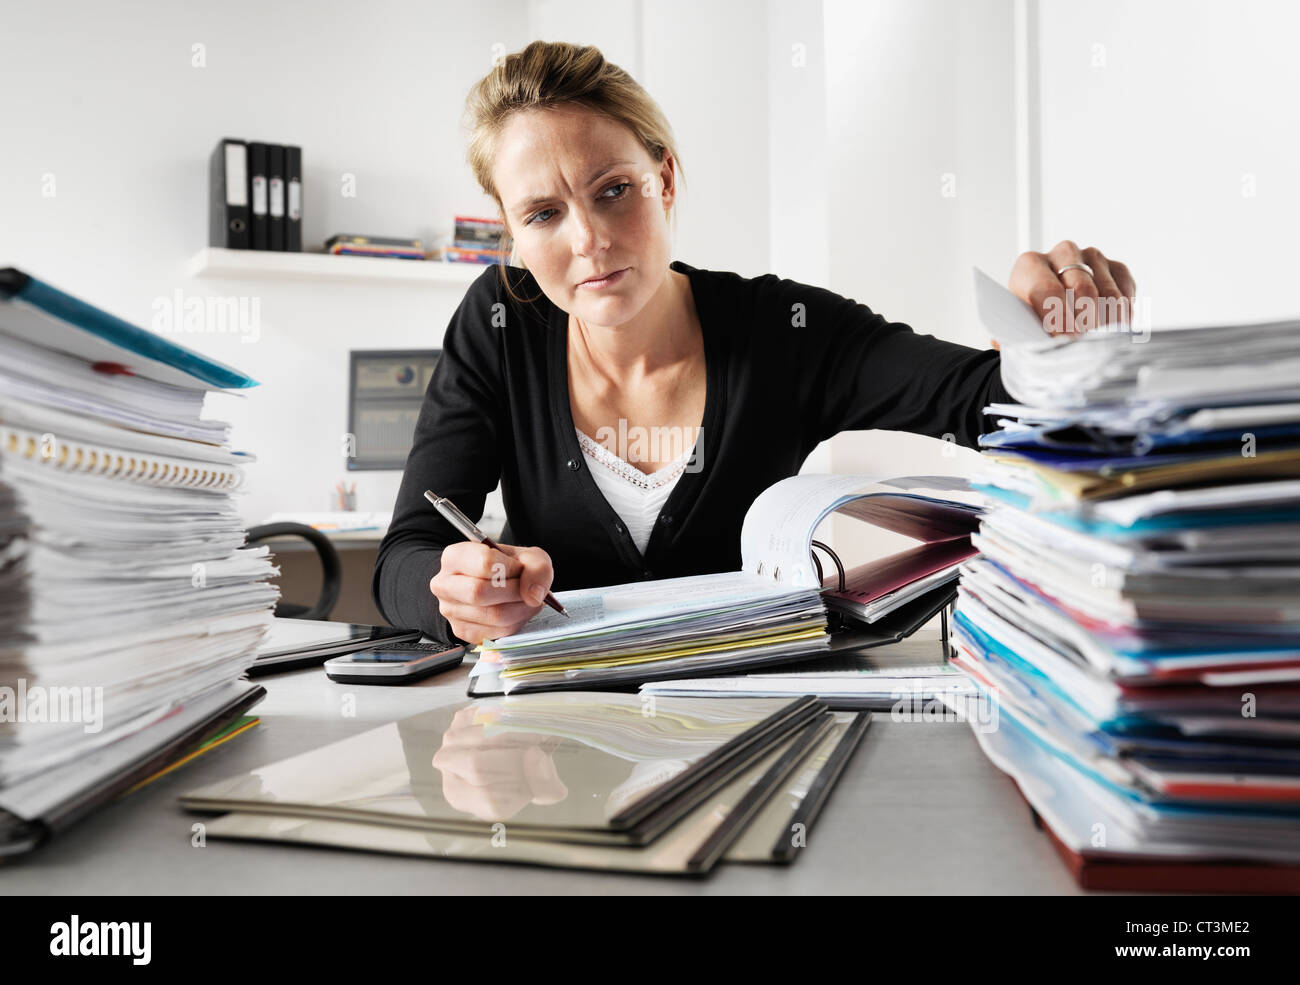 Businesswoman working in office - Stock Image